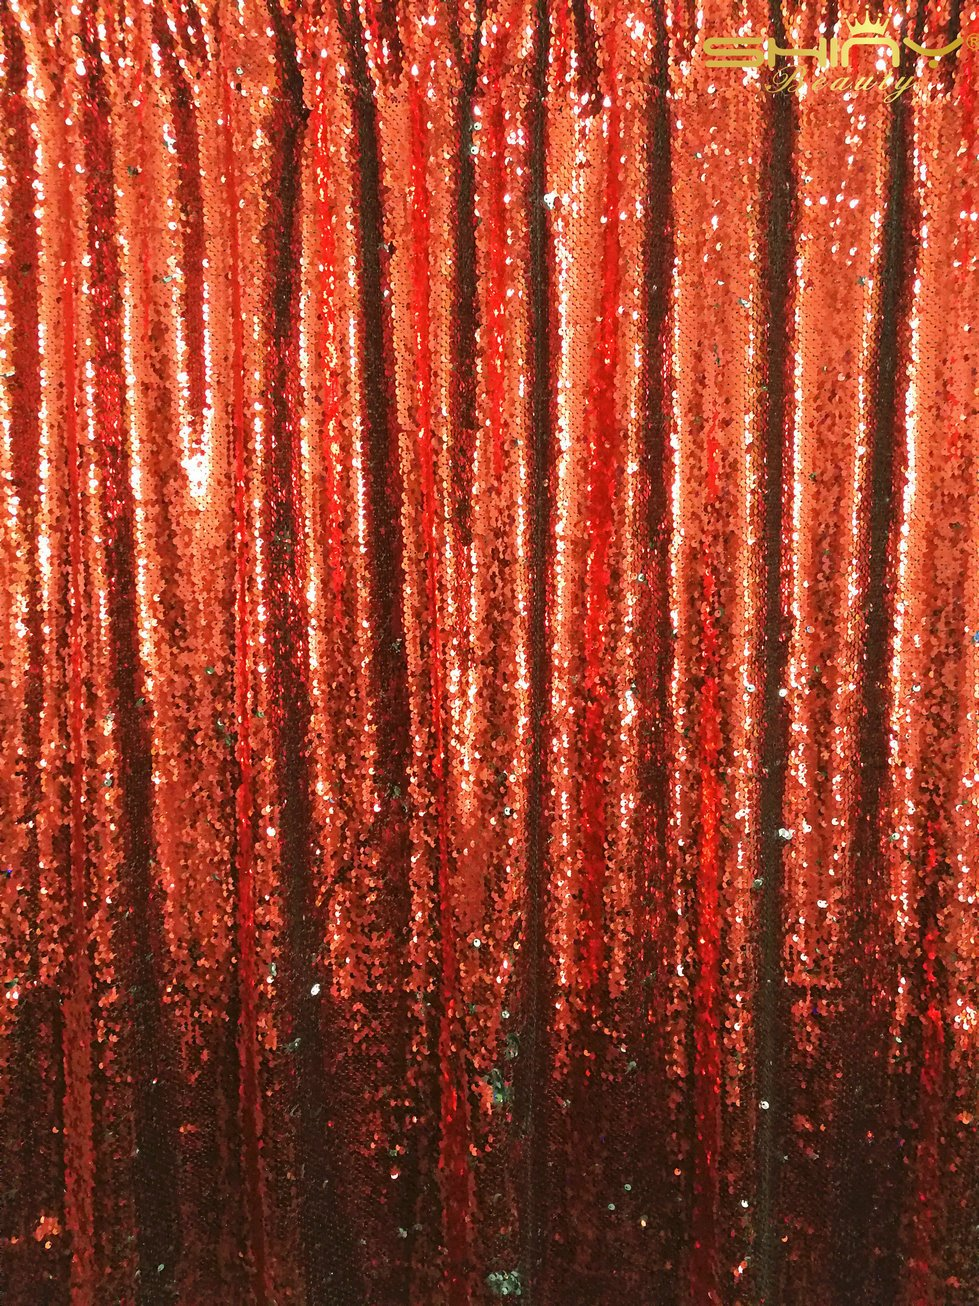 ShinyBeauty Mermaid-Sequin Curtain Backdrop-Red&Silver-10FTx8FT,Sparkyly Sequin Fabric Curtain Backdrop,Perfect for Party/Wedding/Event/Prom/Birthday by ShinyBeauty